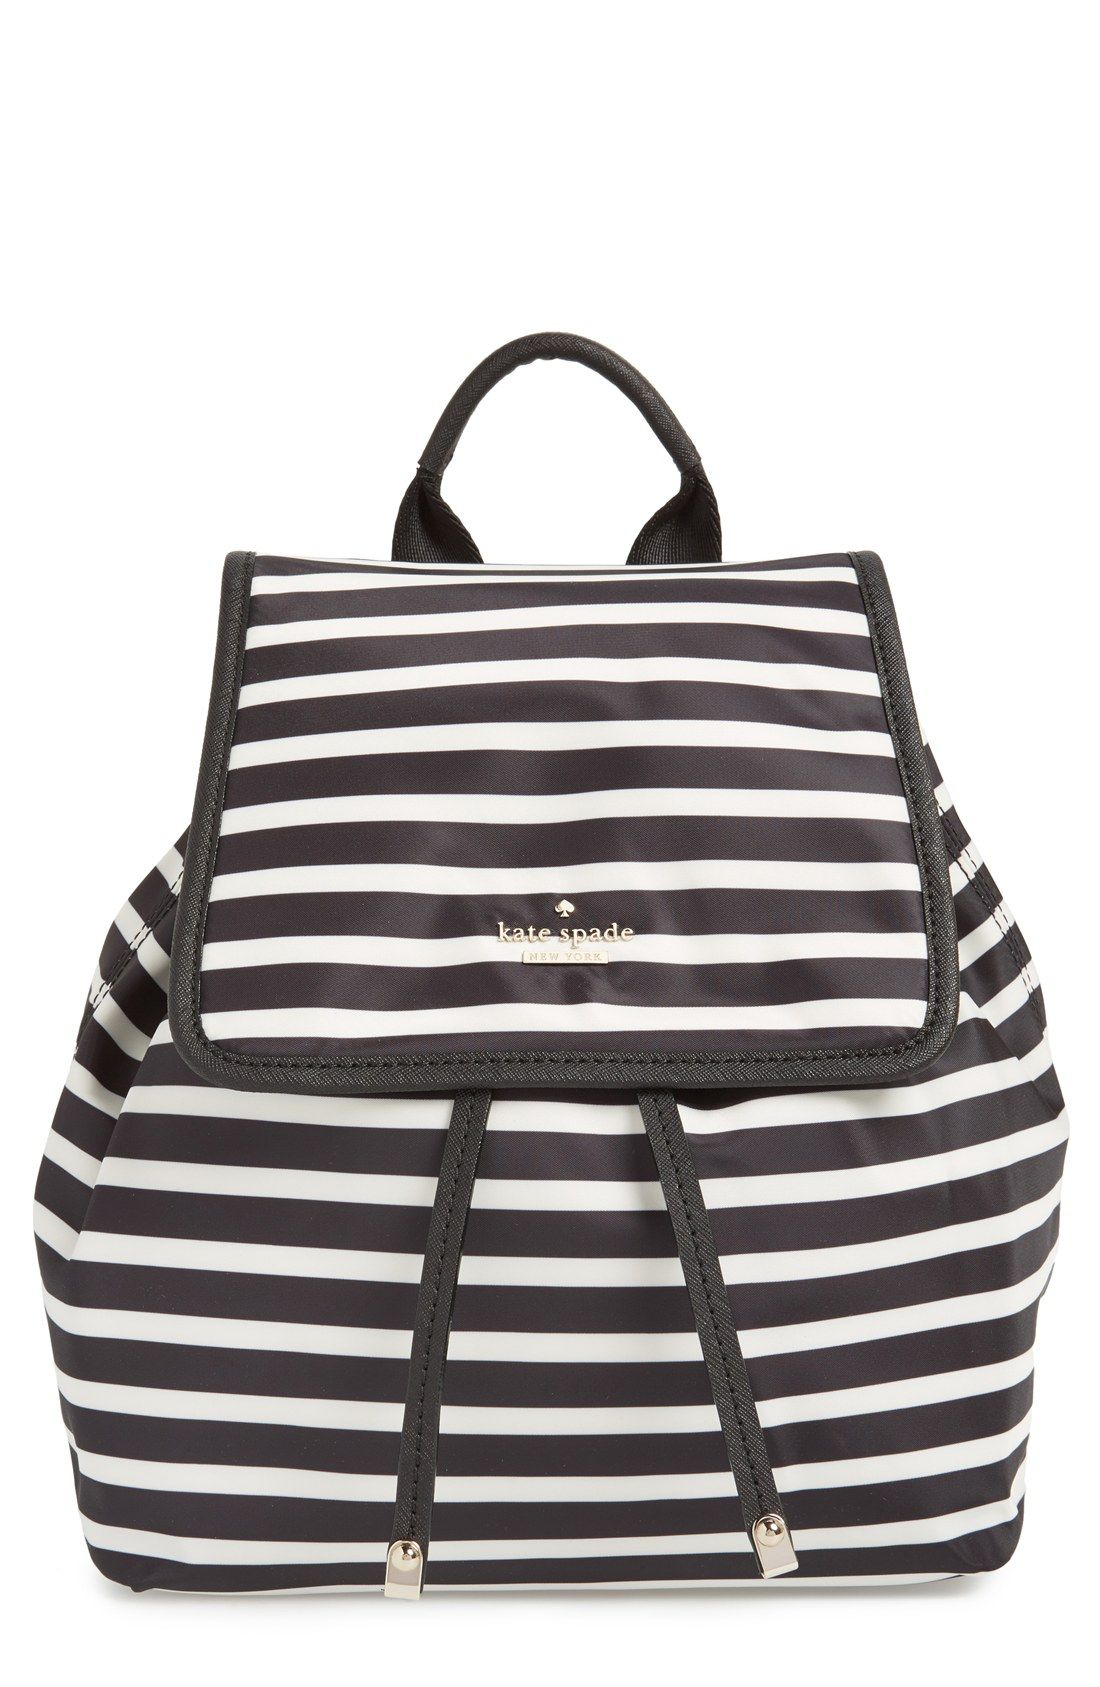 Adding this cute striped Kate Spade backpack to the wishlist.  c441dd9c81fd0